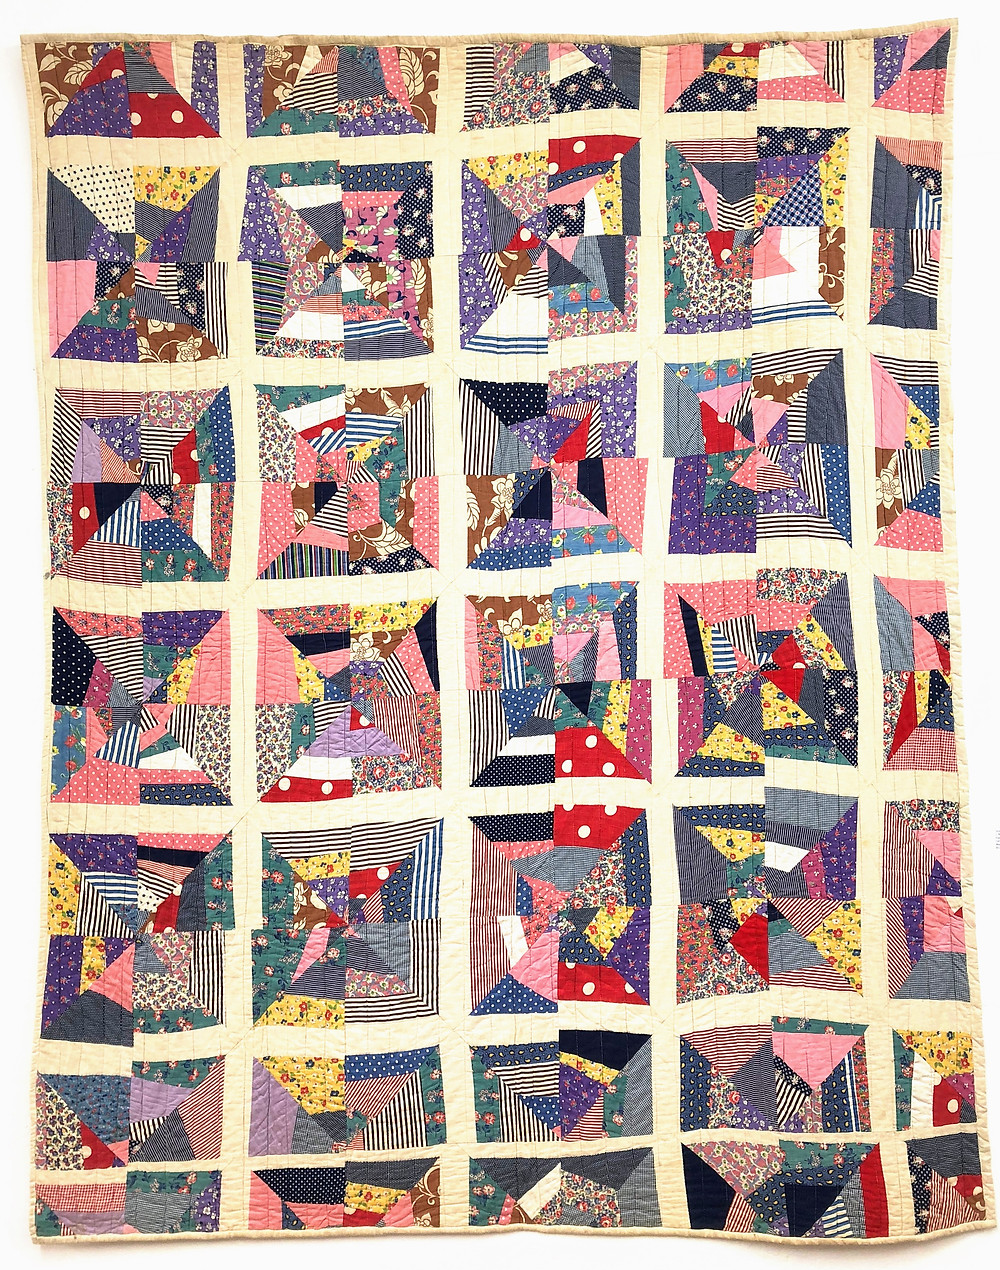 Broken Grid Quilt from the Kiracofe Collection